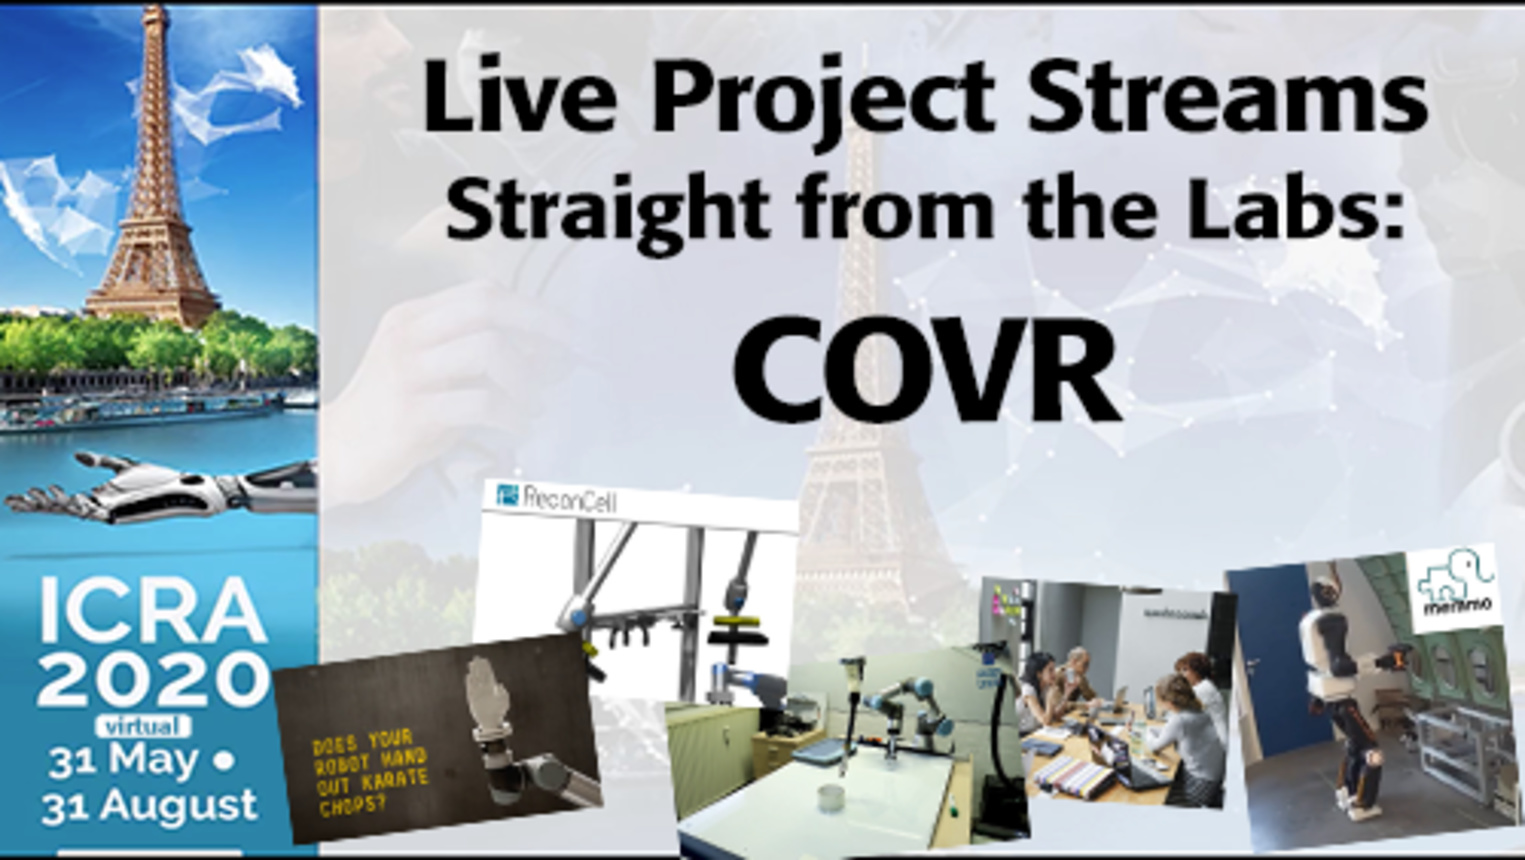 ICRA 2020-Live Project Demo: COVR